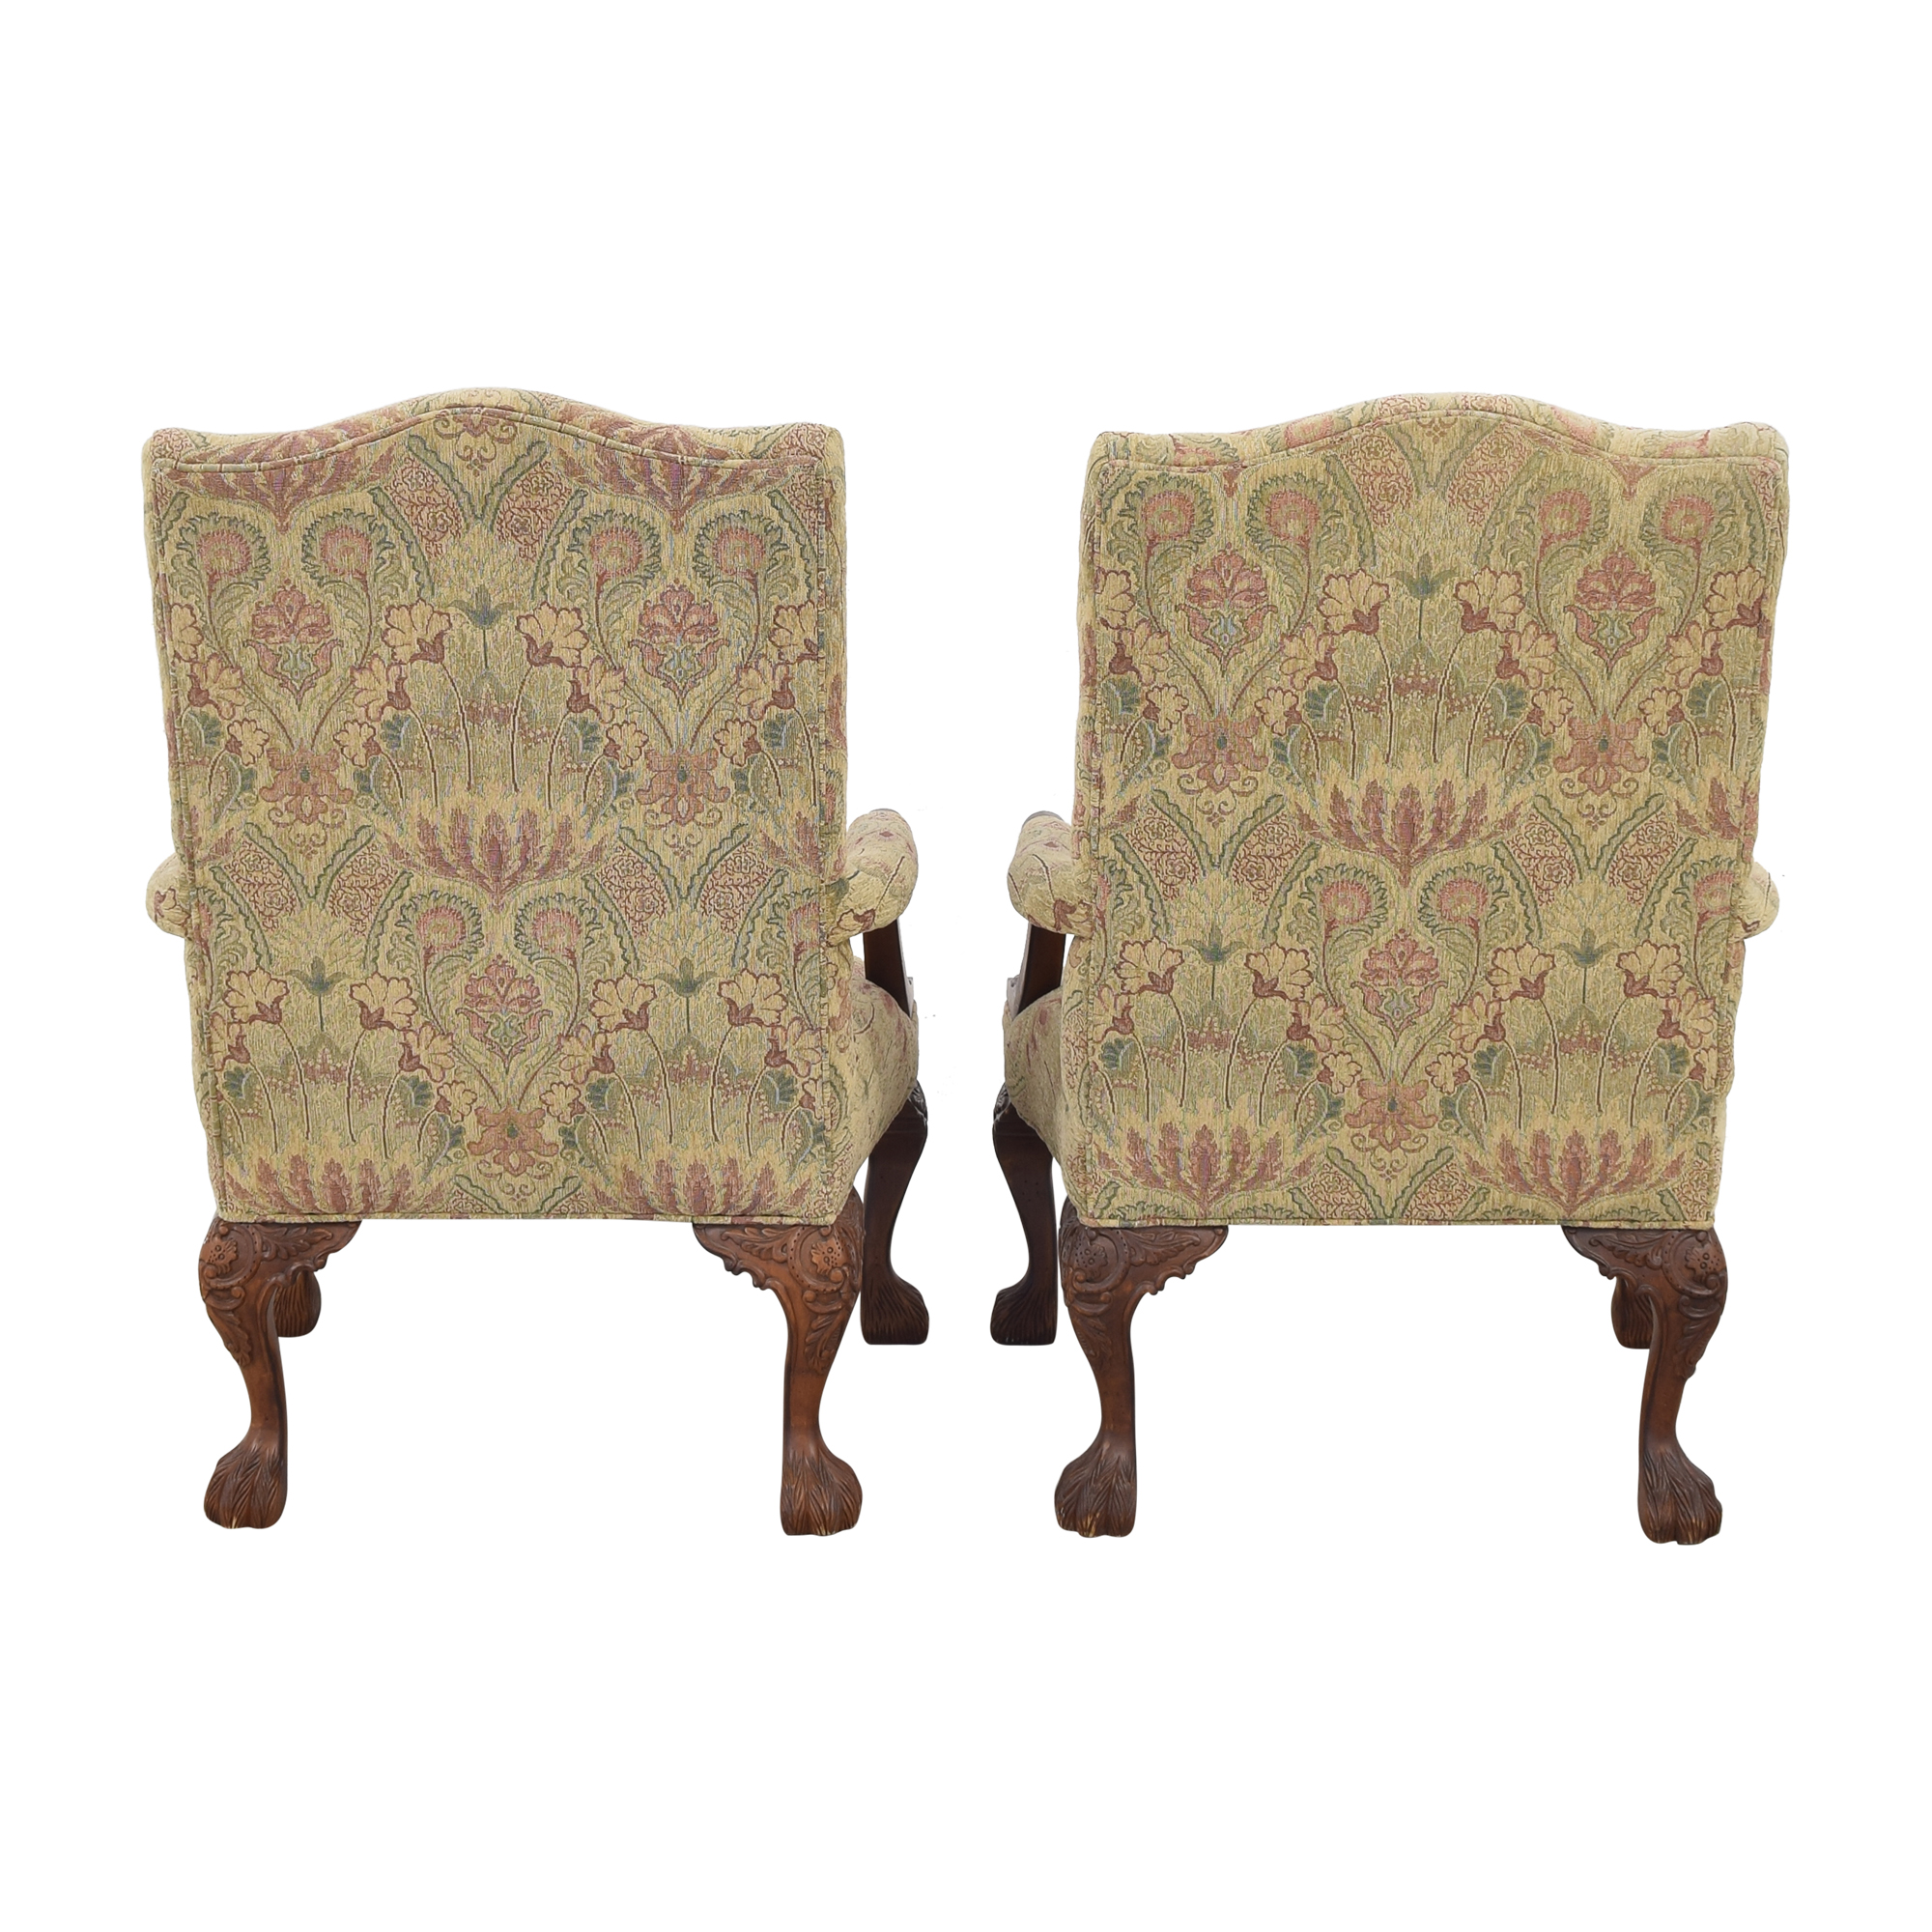 buy Sam Moore Tibetan Tapestry Old World Finish Carved Wood Chairs Sam Moore